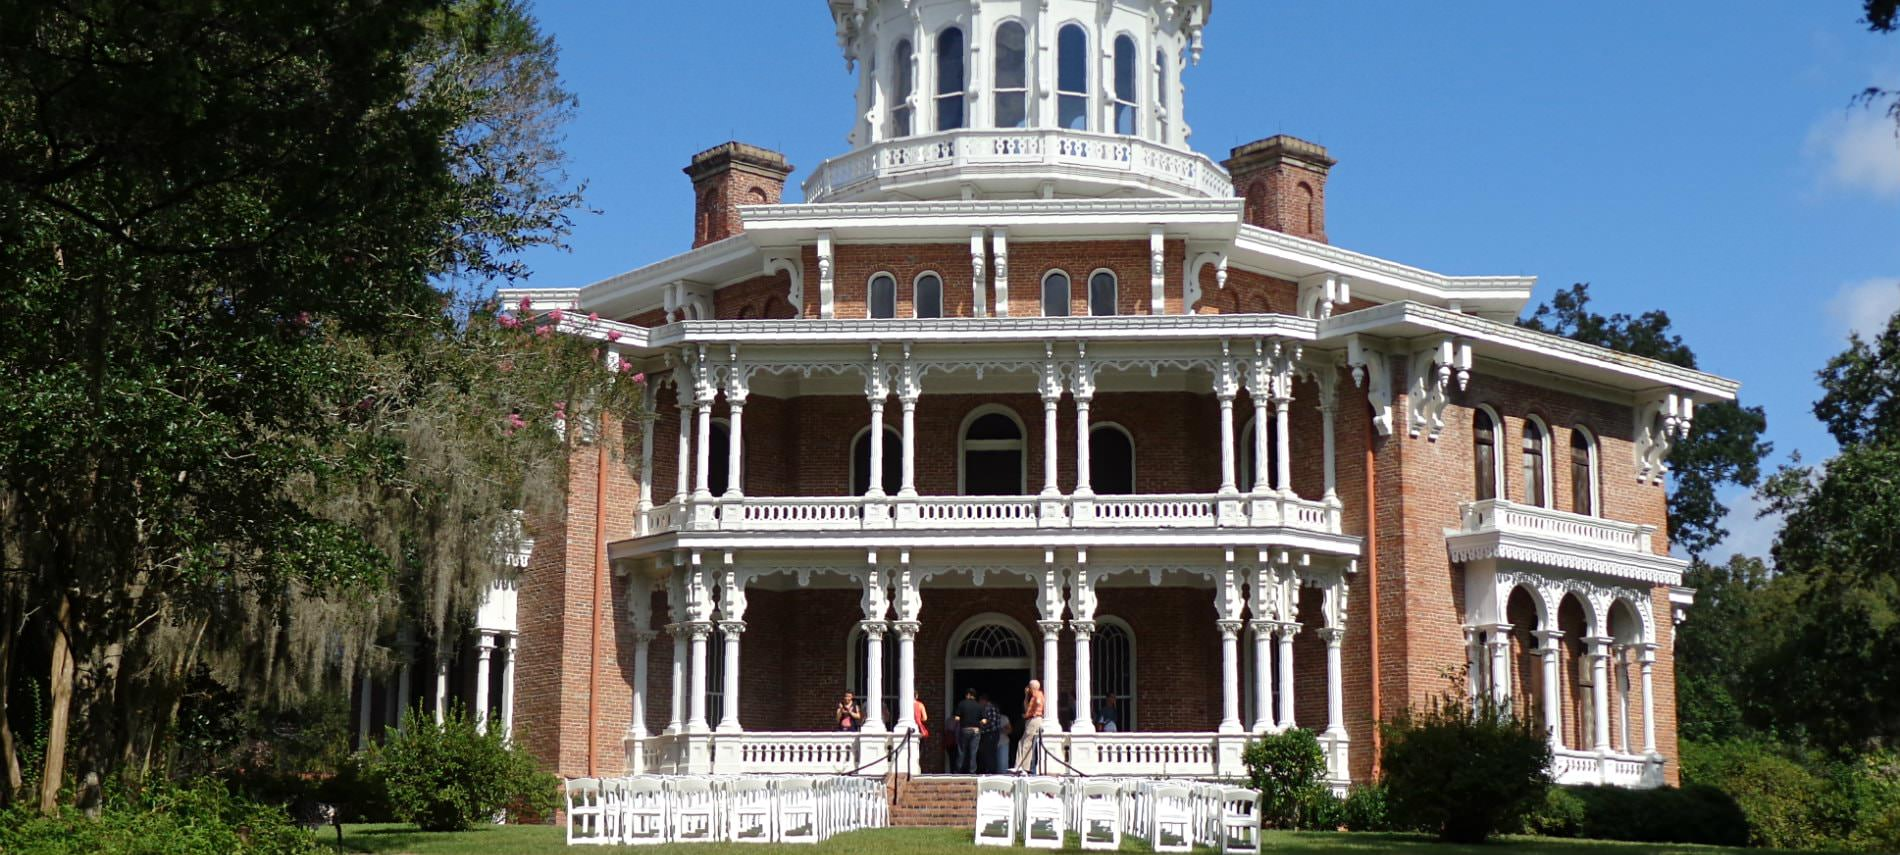 View of a three story brick venue with decorative white pillars and fencing with white chairs in rows in front yard